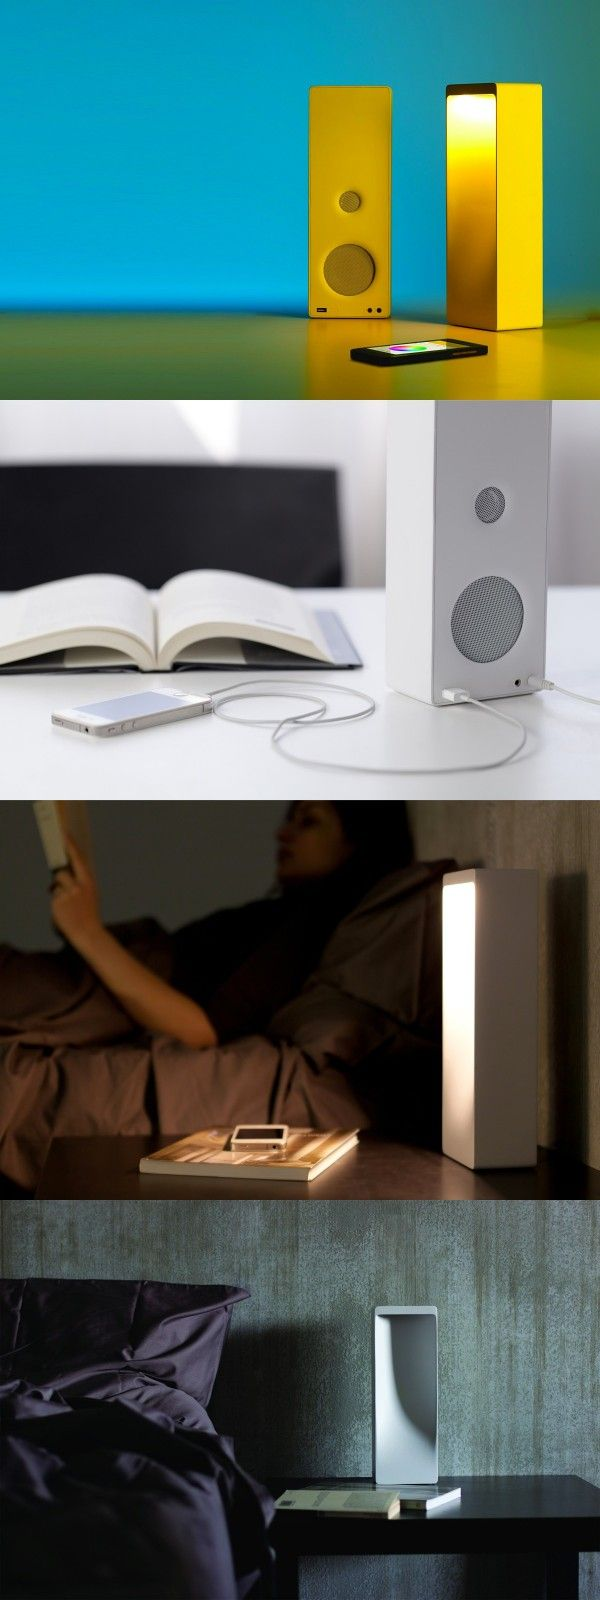 The Cromatica Bluetooth Speaker + Lamp provides a source of warm sound and warm light, allowing users to program the light to change along with the sound.